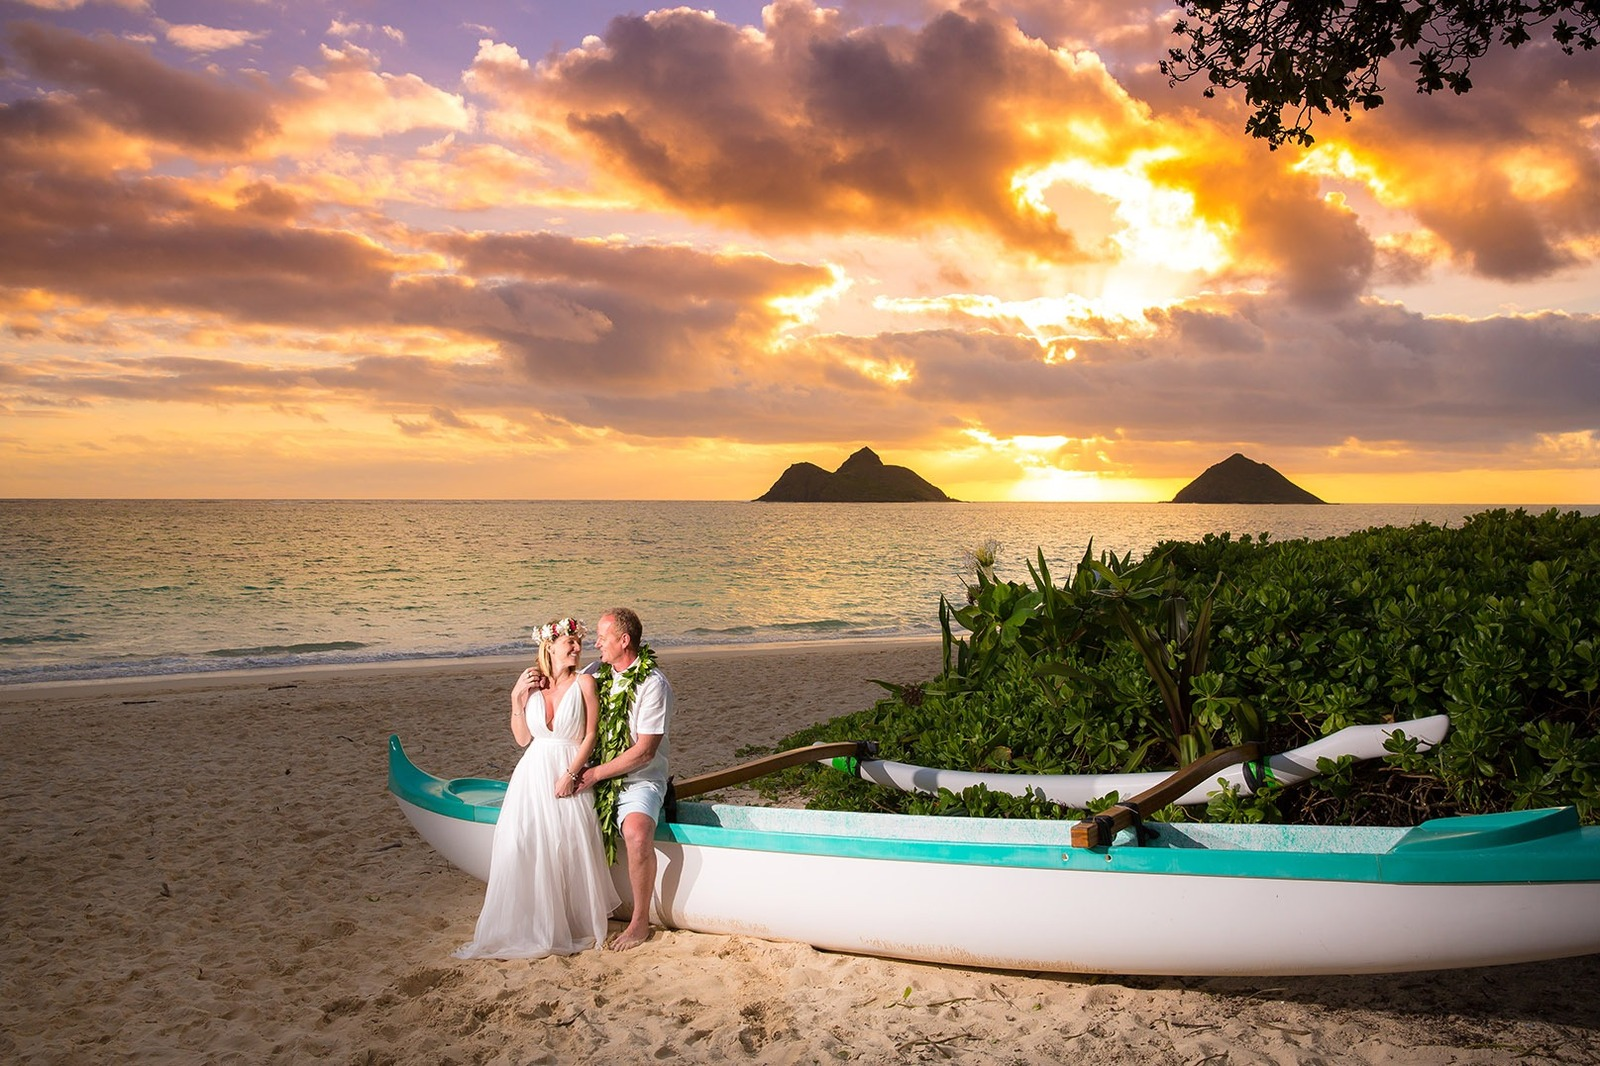 Sunrise Oahu Vow Renewal Photographer Lanikai Beach Hawaii Kailua